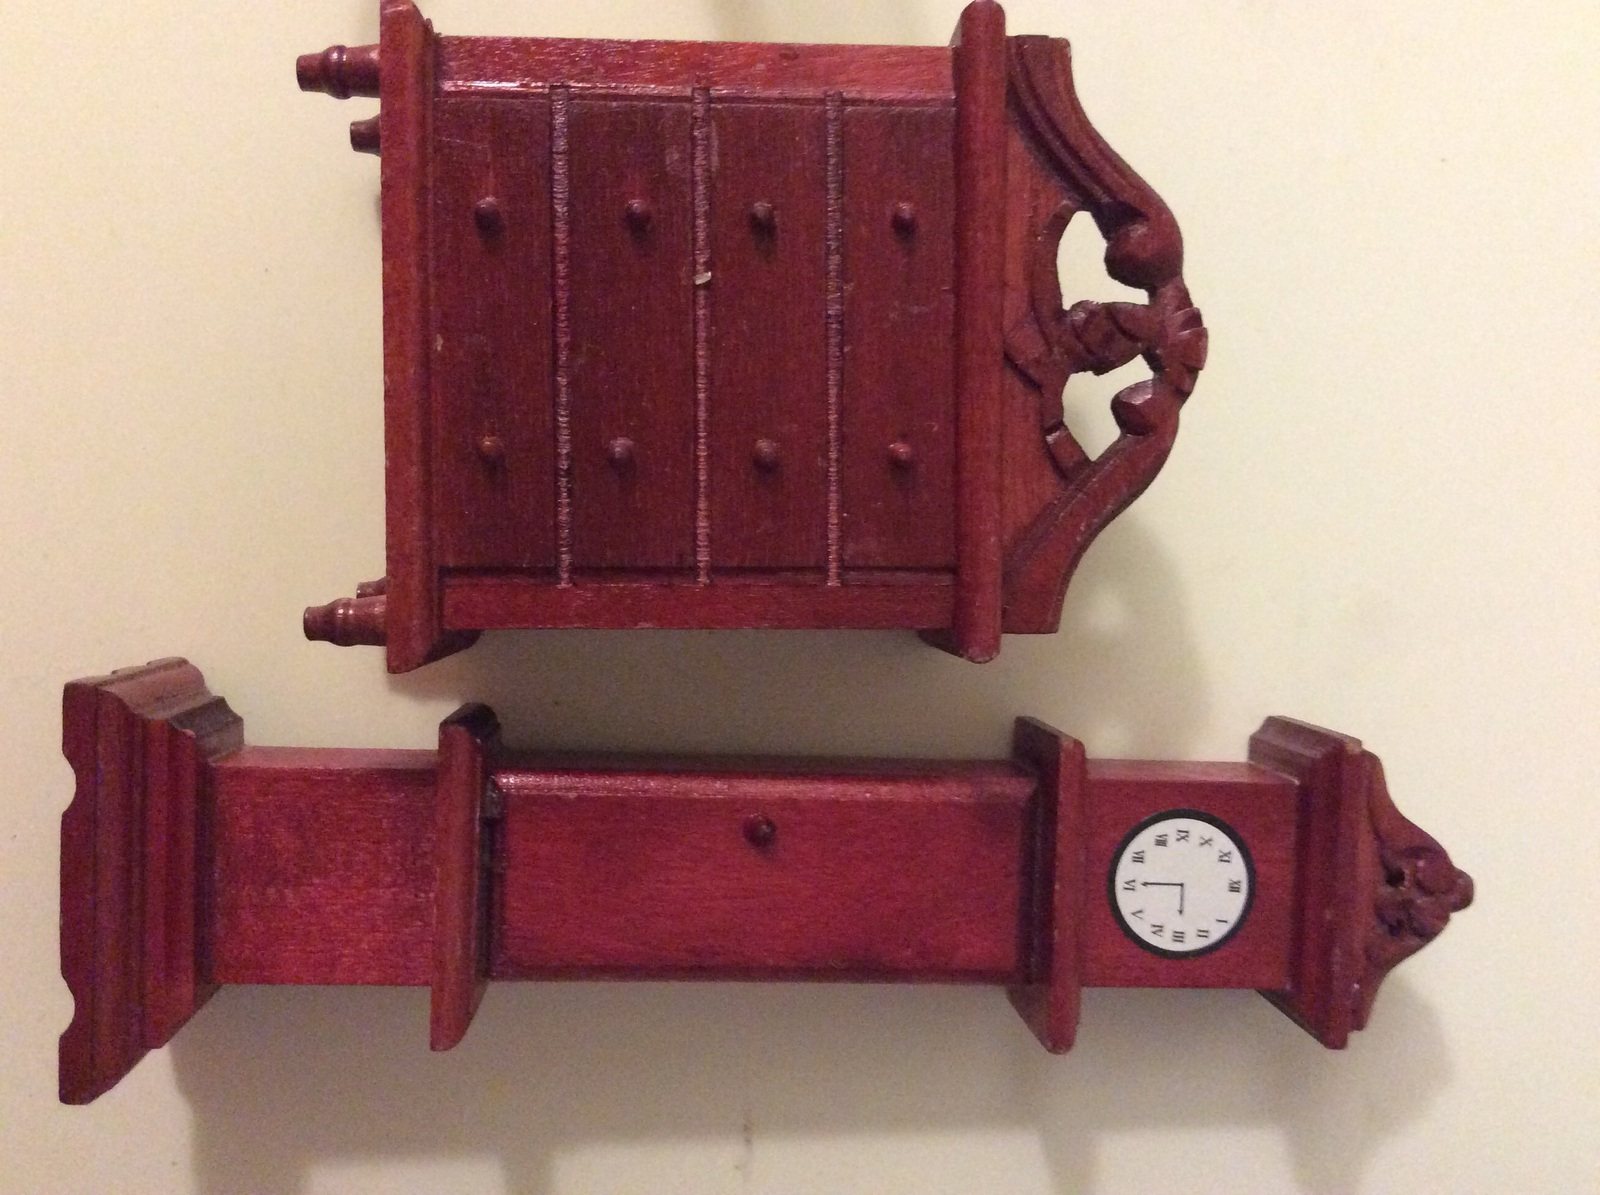 Miniature Dollhouse Bedroom Furniture  -  Music pieces Grandfather clock